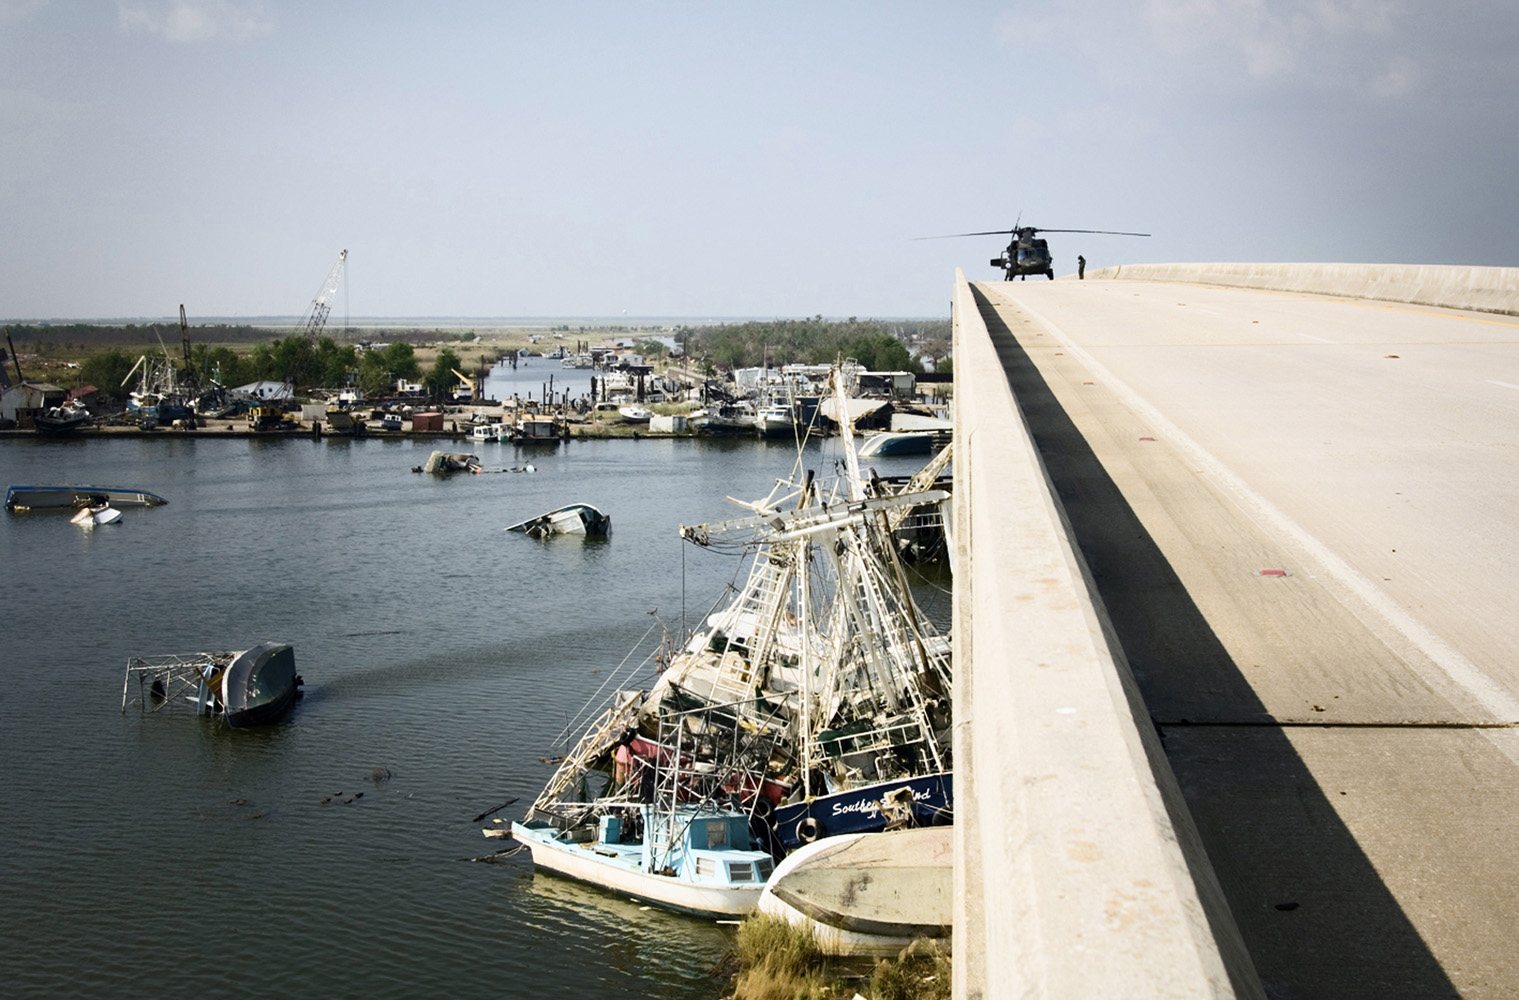 Empire, Plaquemines Parish, Louisiana, USA.Black Hawk helicopter lands on the bridge for surveillance. Shrimp, Oyster and Menhaden boats thrown around in the harbour of Empire after a 33-foot storm surge accompanying Hurricane Katrina. The entire fishing fleet is wiped out.